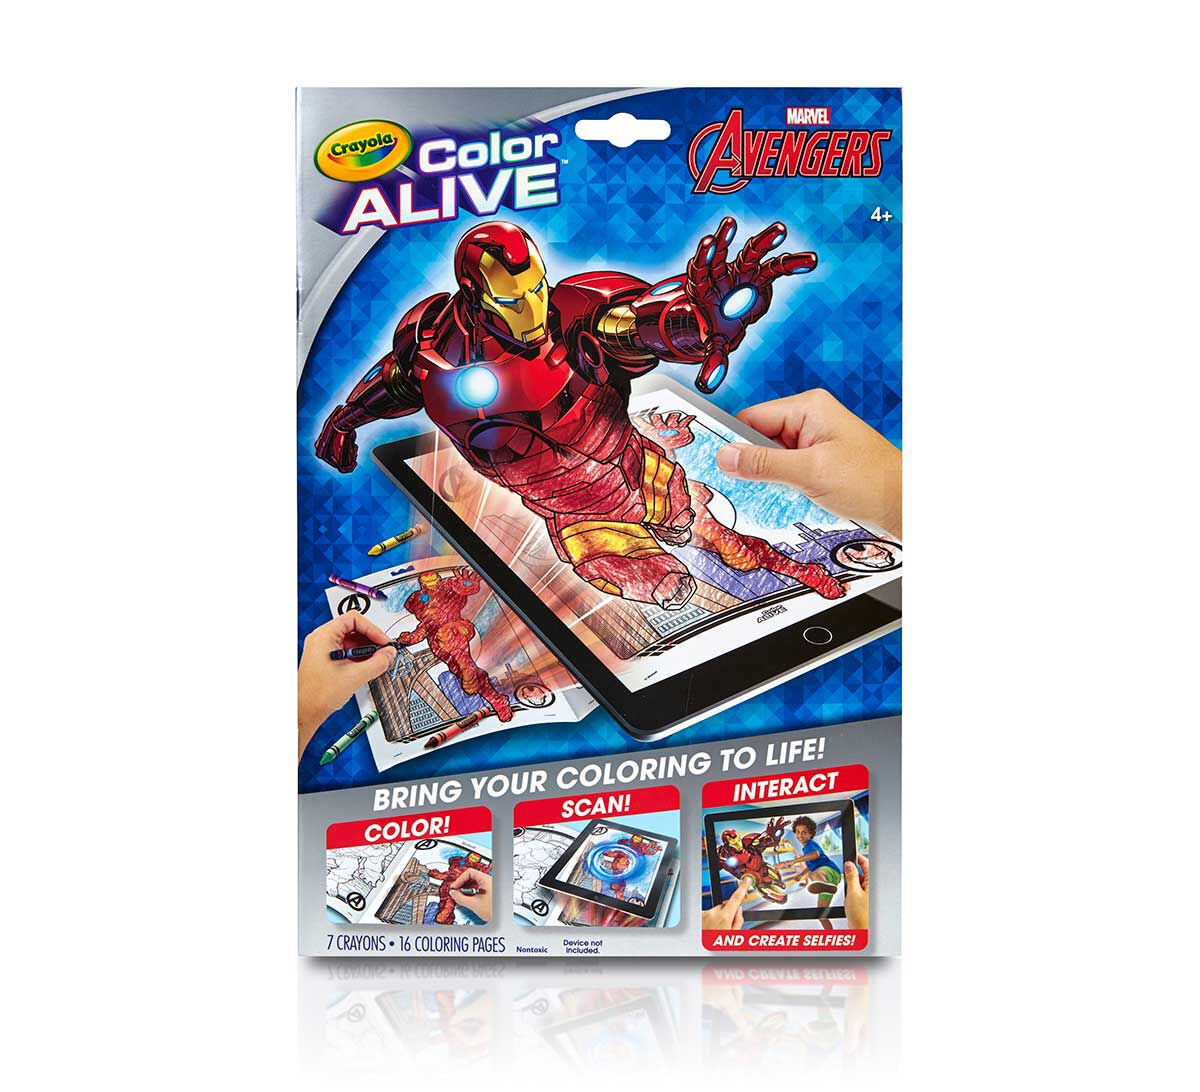 Online virtual coloring - Color Alive Avengers